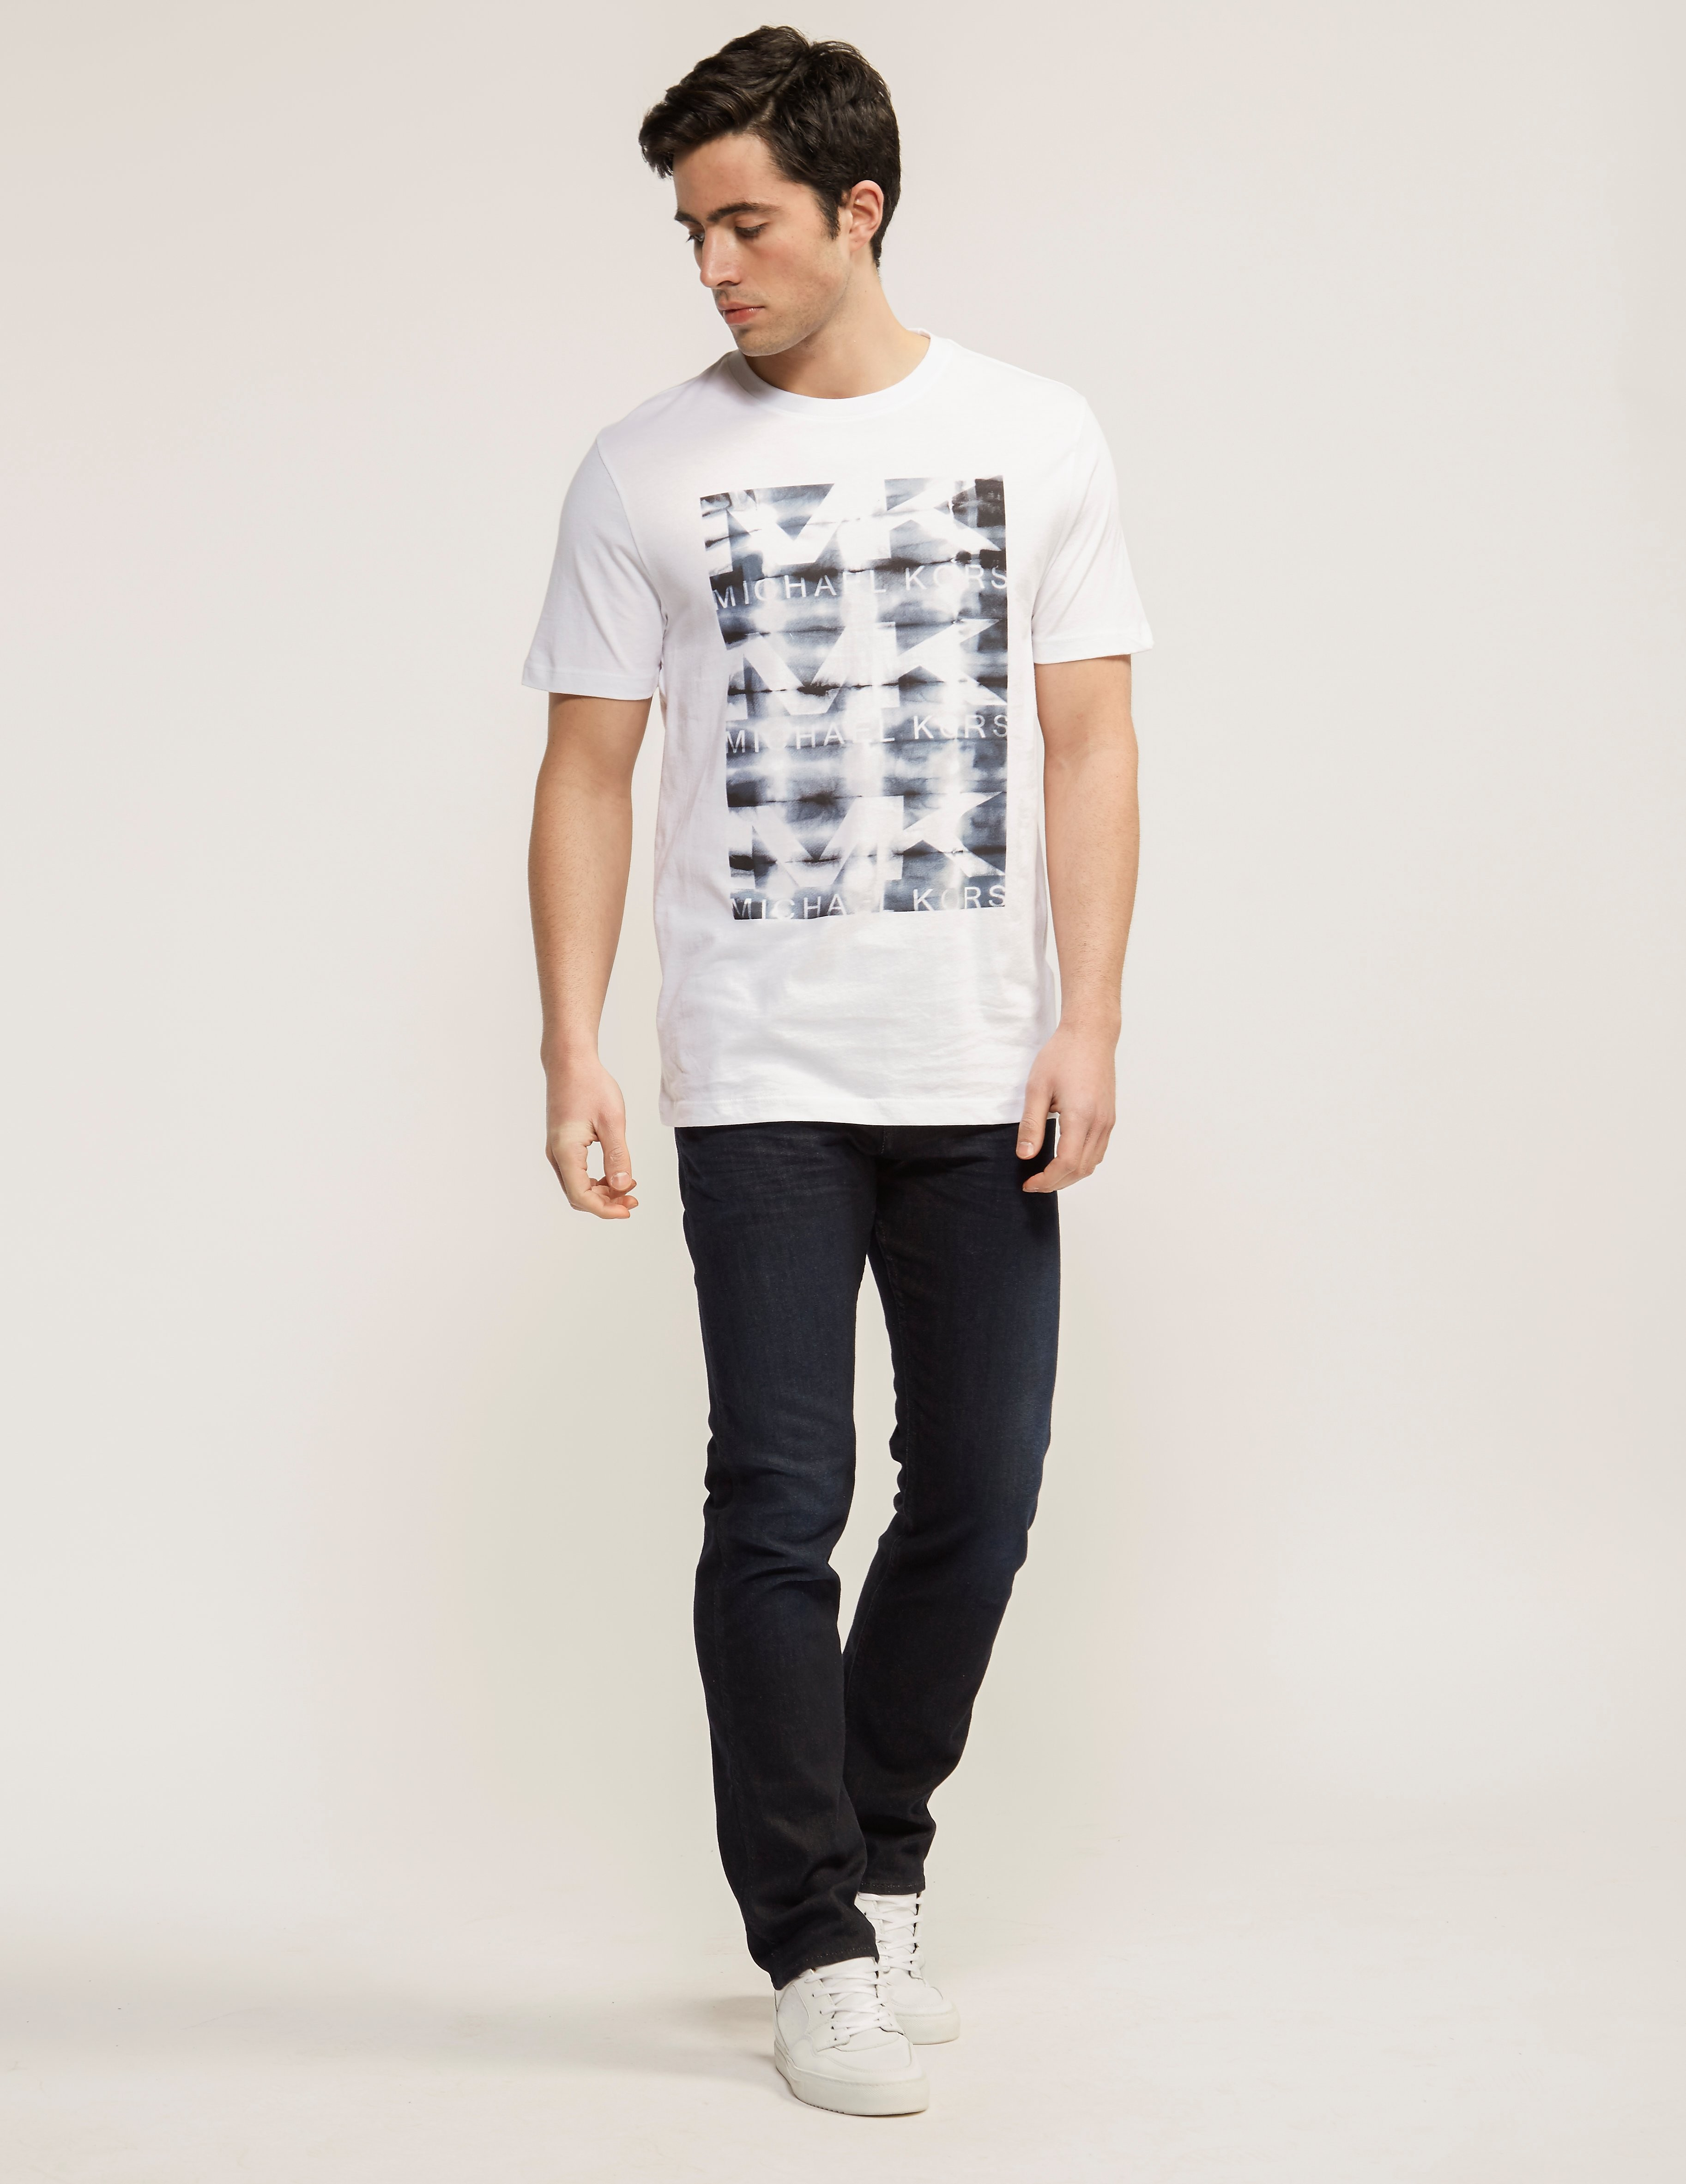 Michael Kors Ink Graphic T-shirt